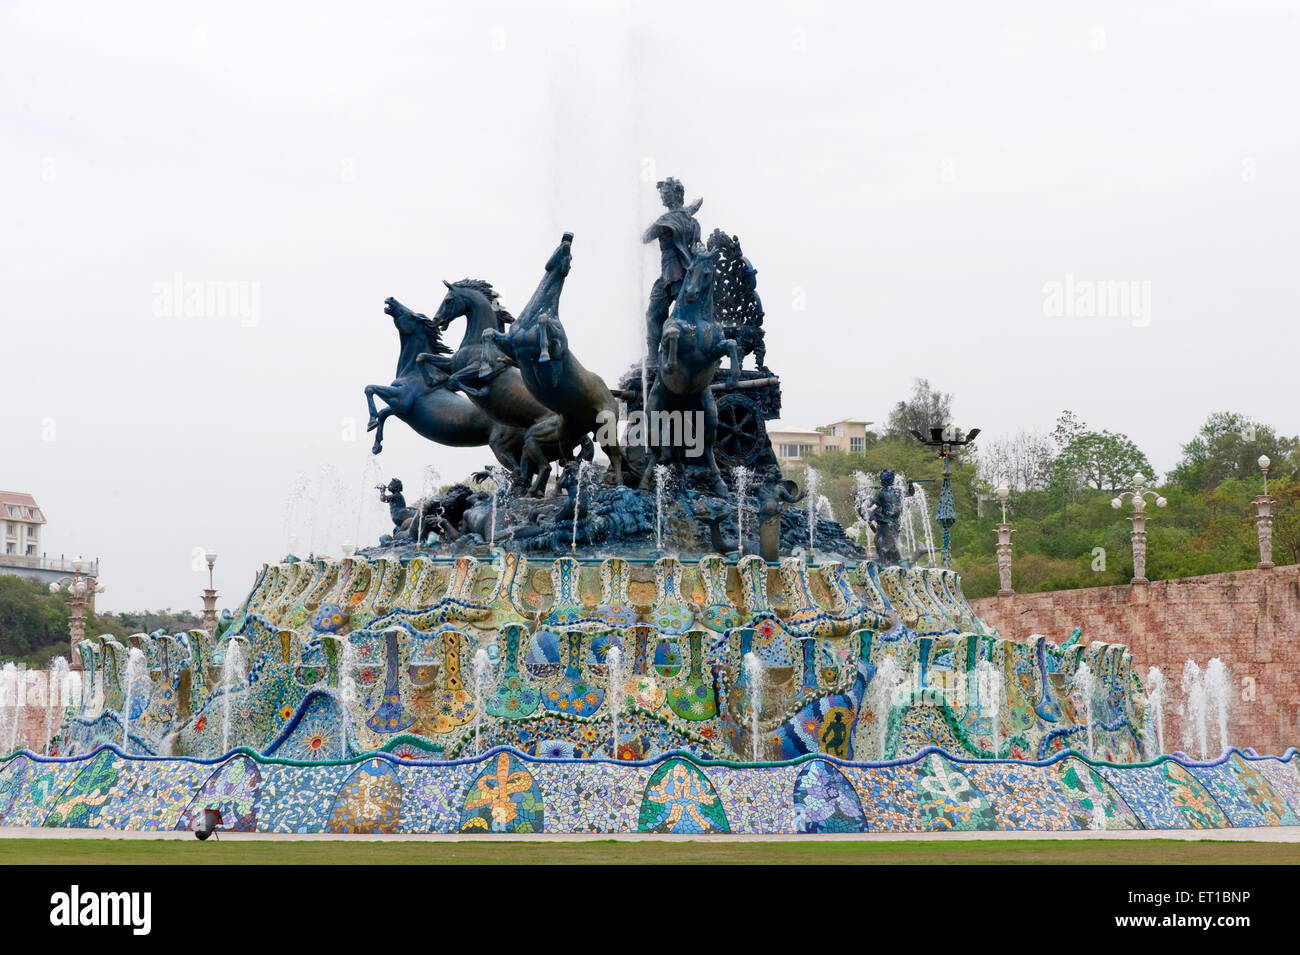 Roman style statue with water fountain at ramoji film city ; Hyderabad ; Andhra Pradesh ; India - Stock Image